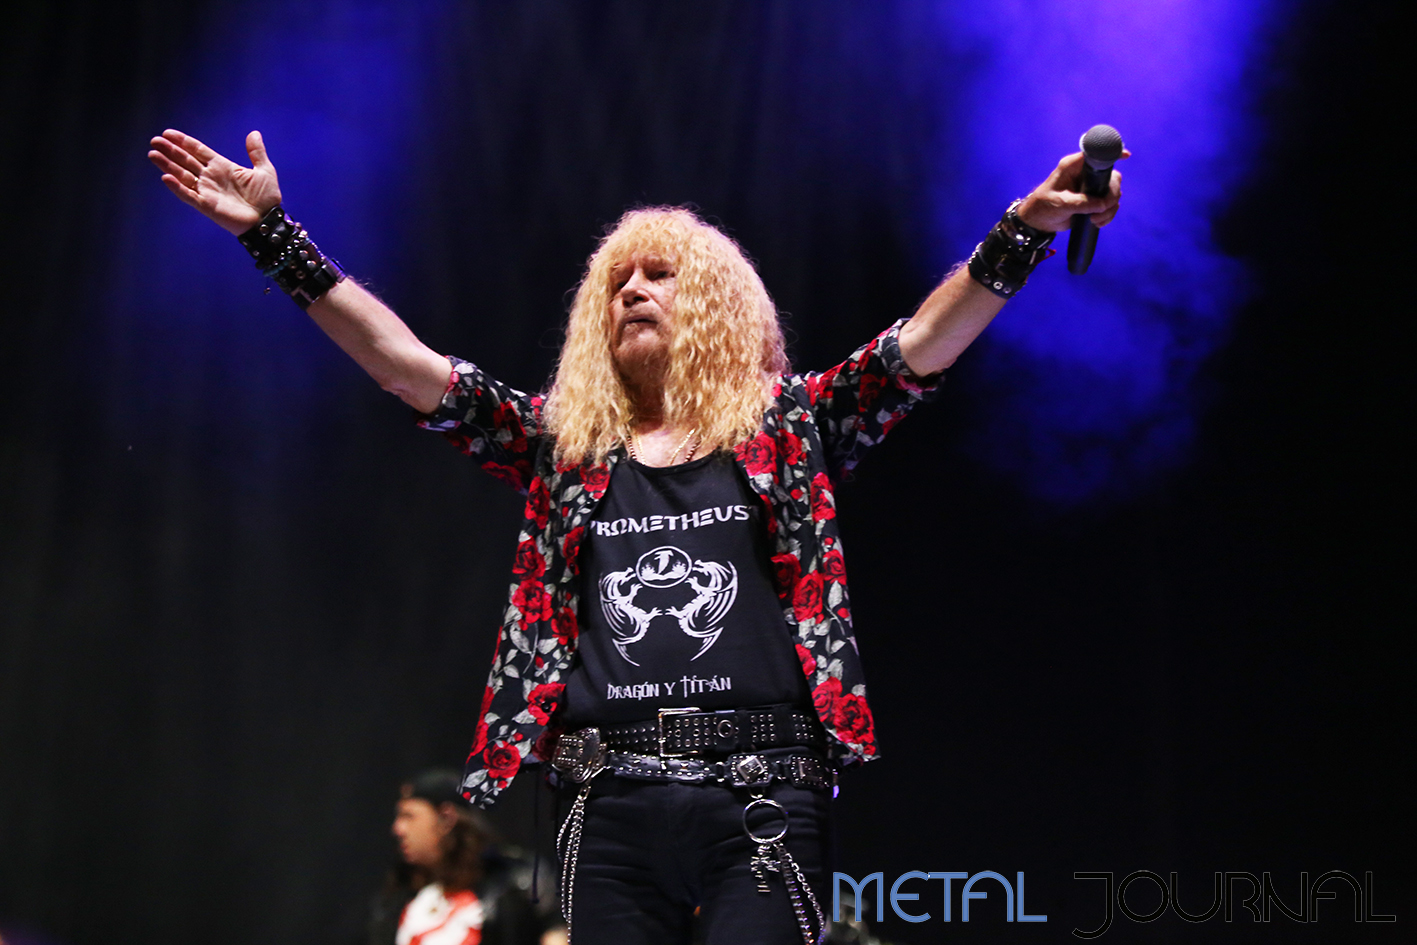 medina azahara - leyendas del rock 2019 metal journal pic 1